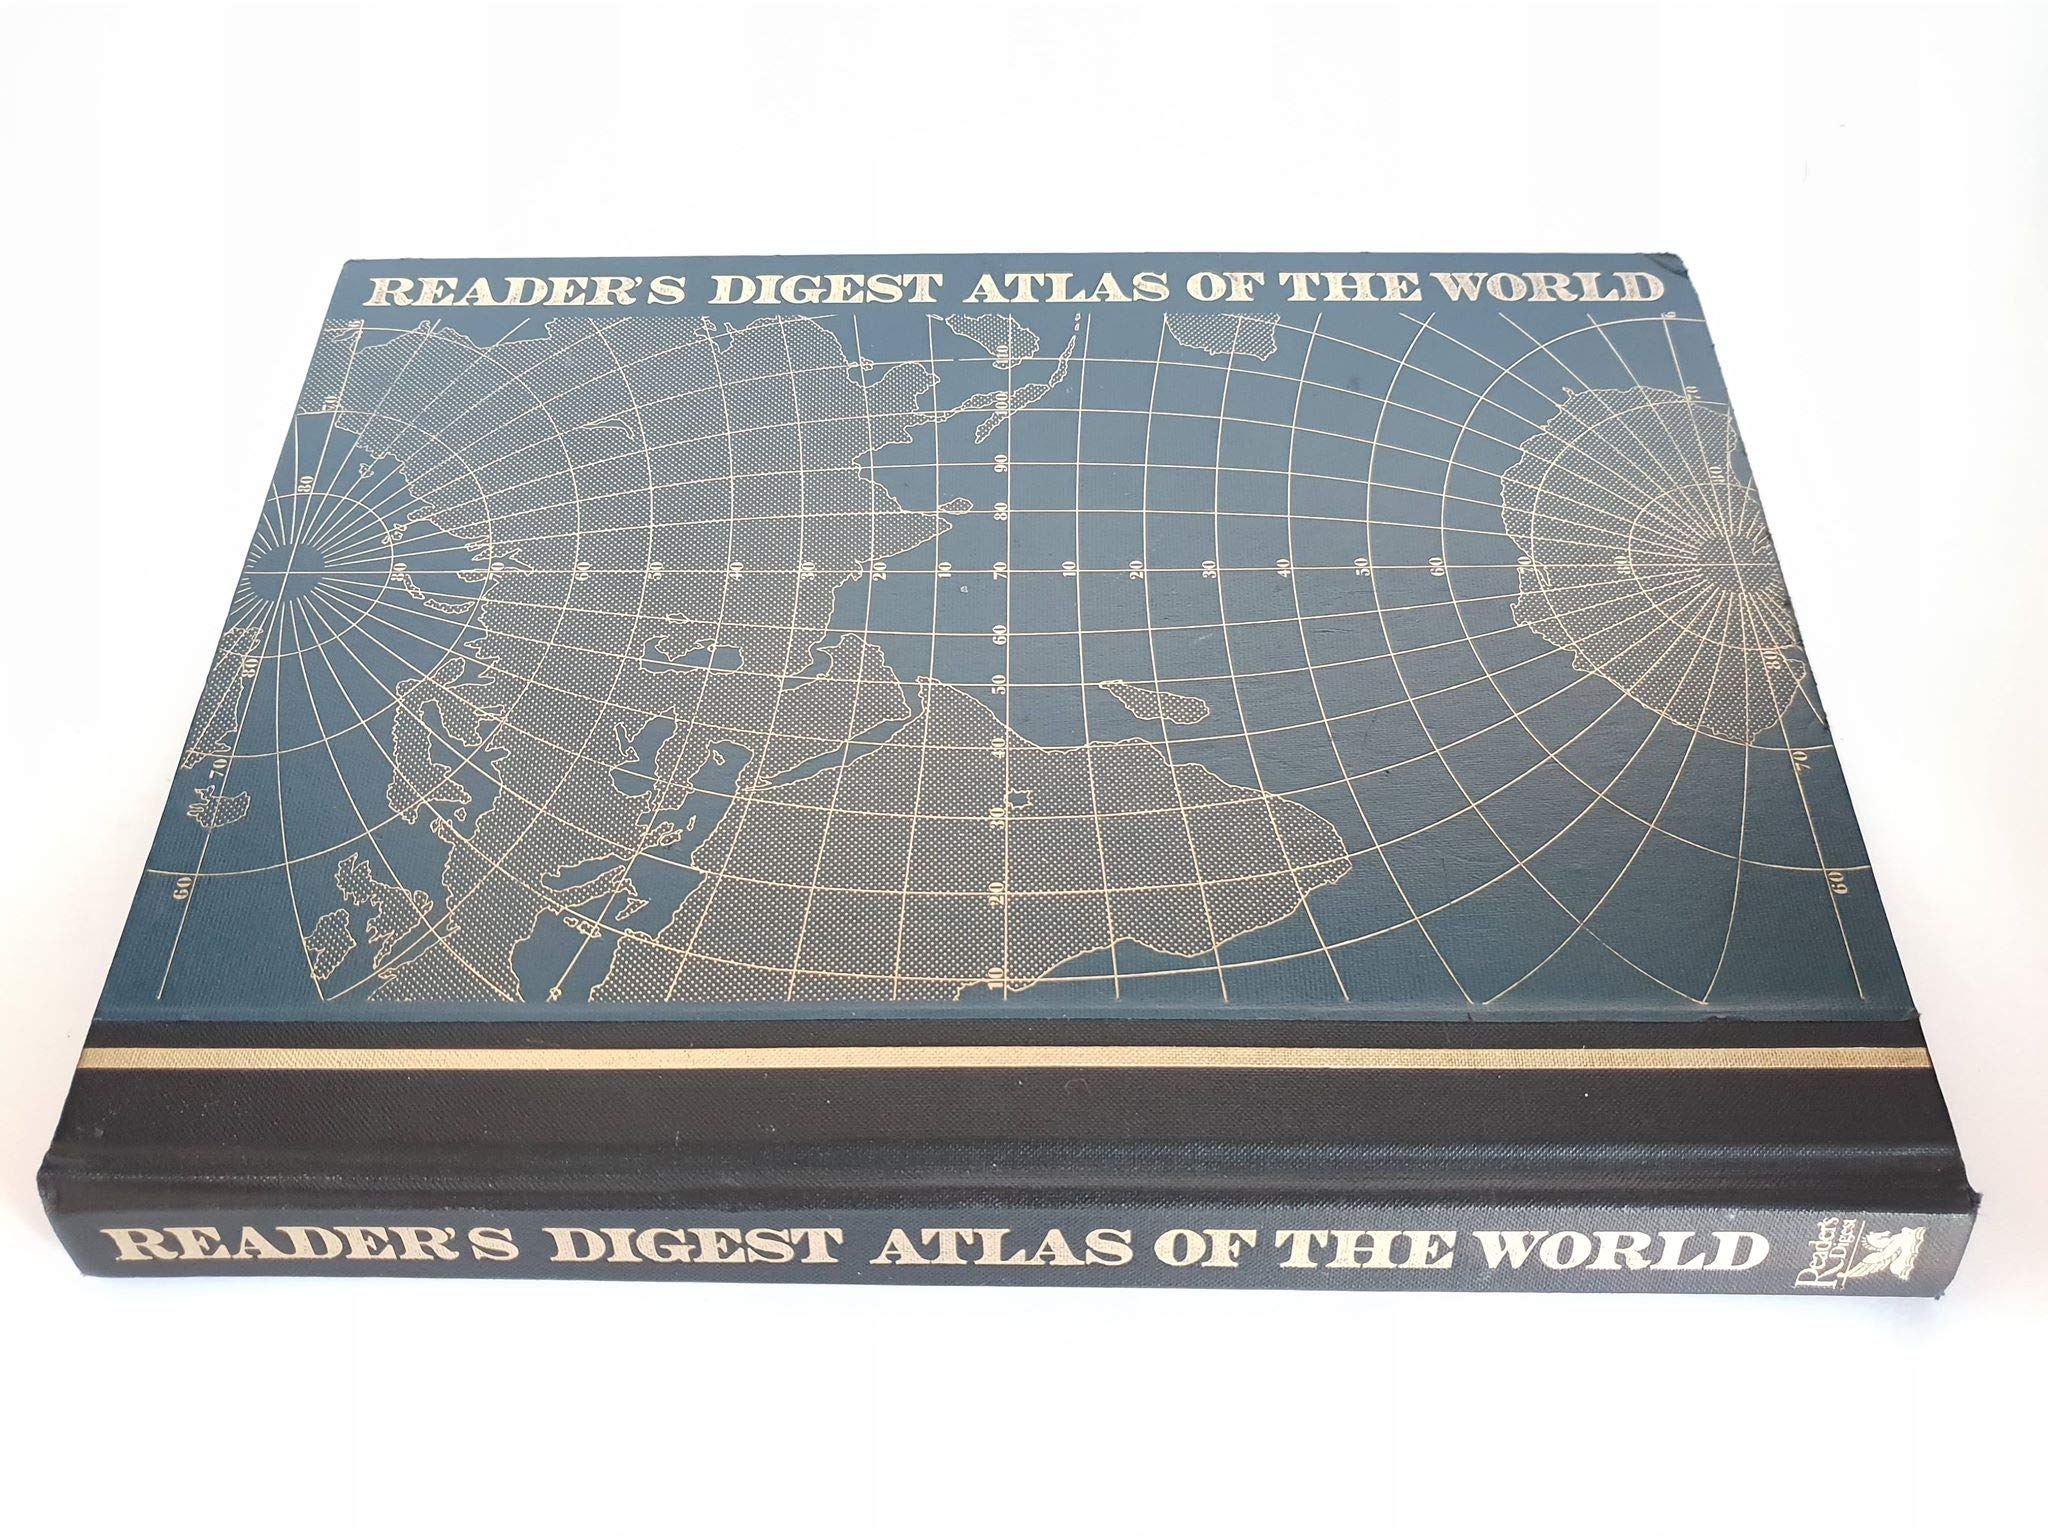 Reader S Digest Atlas Of The World Reader S Digest Association 9780276420016 Amazon Com Books Are old readers digest books worth any